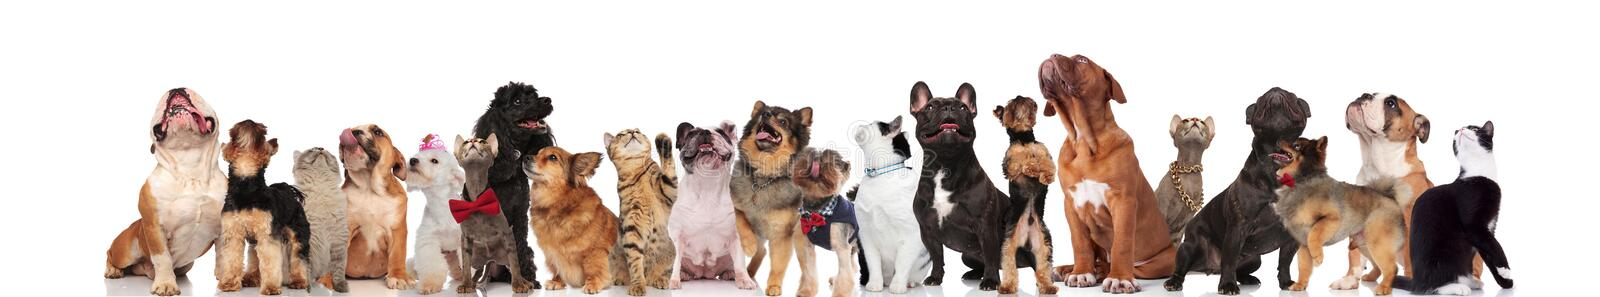 Large group of mixed dogs and cats looking up royalty free stock photos